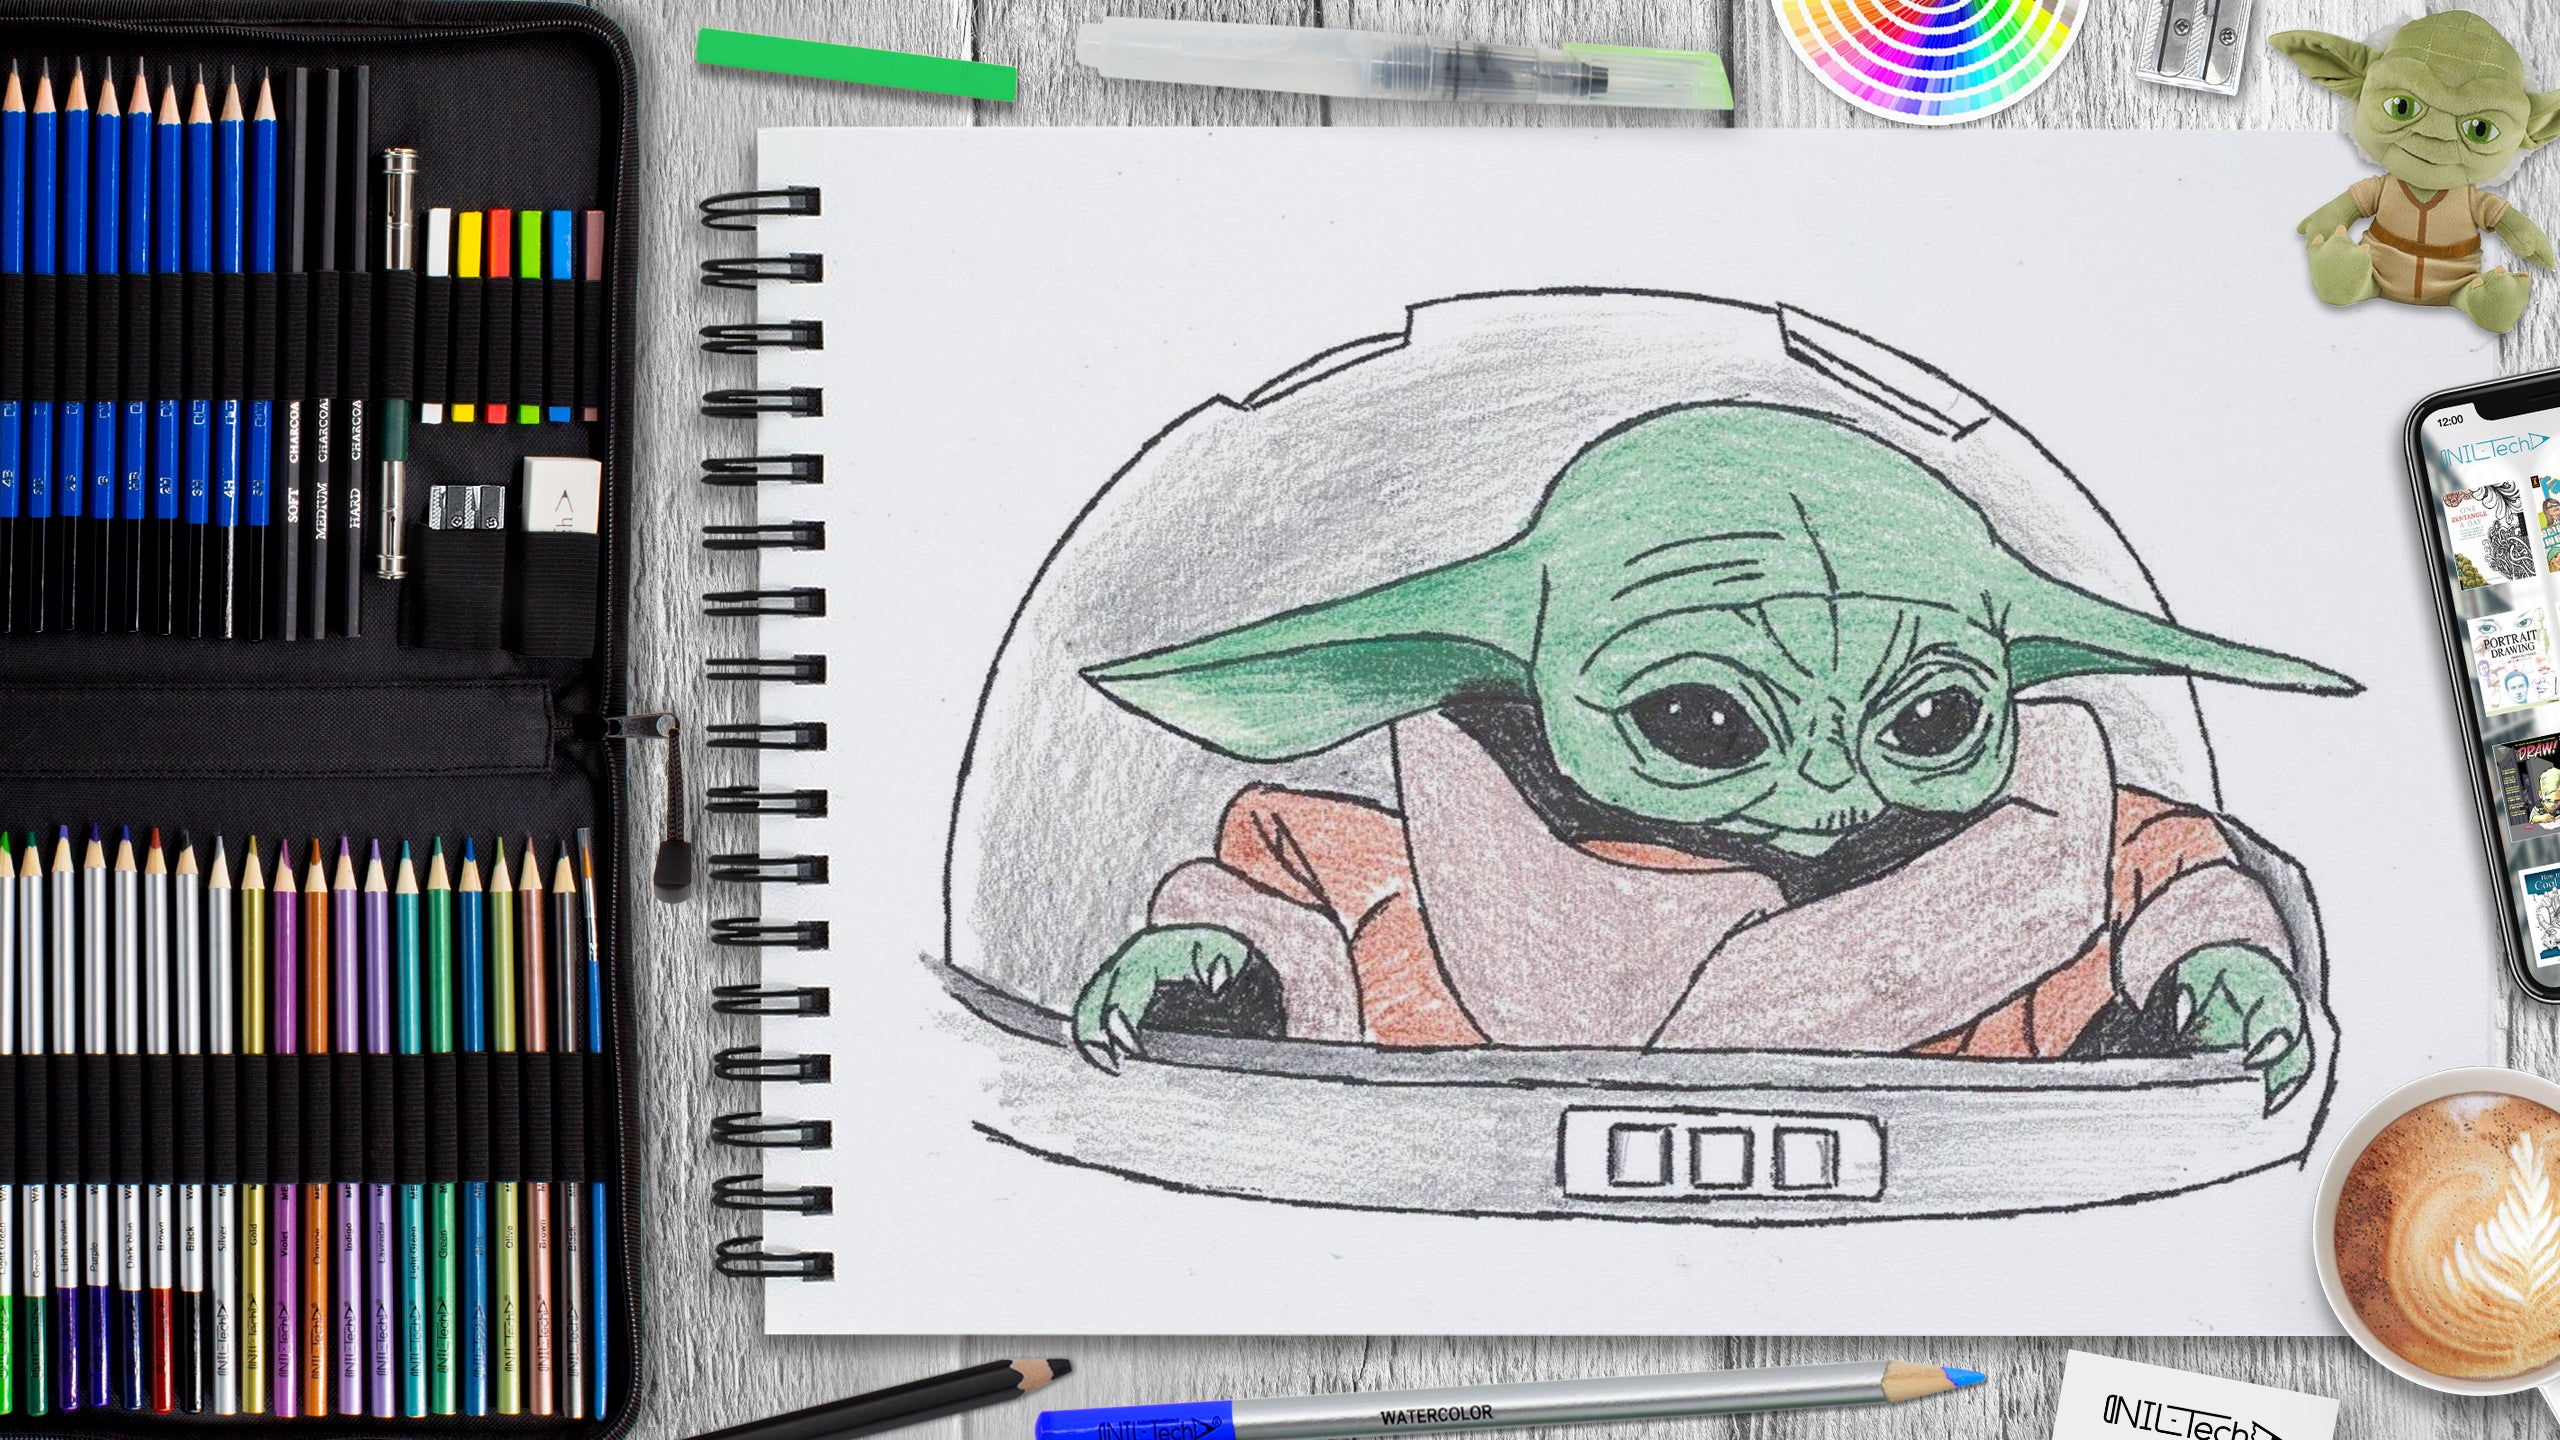 learn how to draw baby yoda from disney+ mandalorian